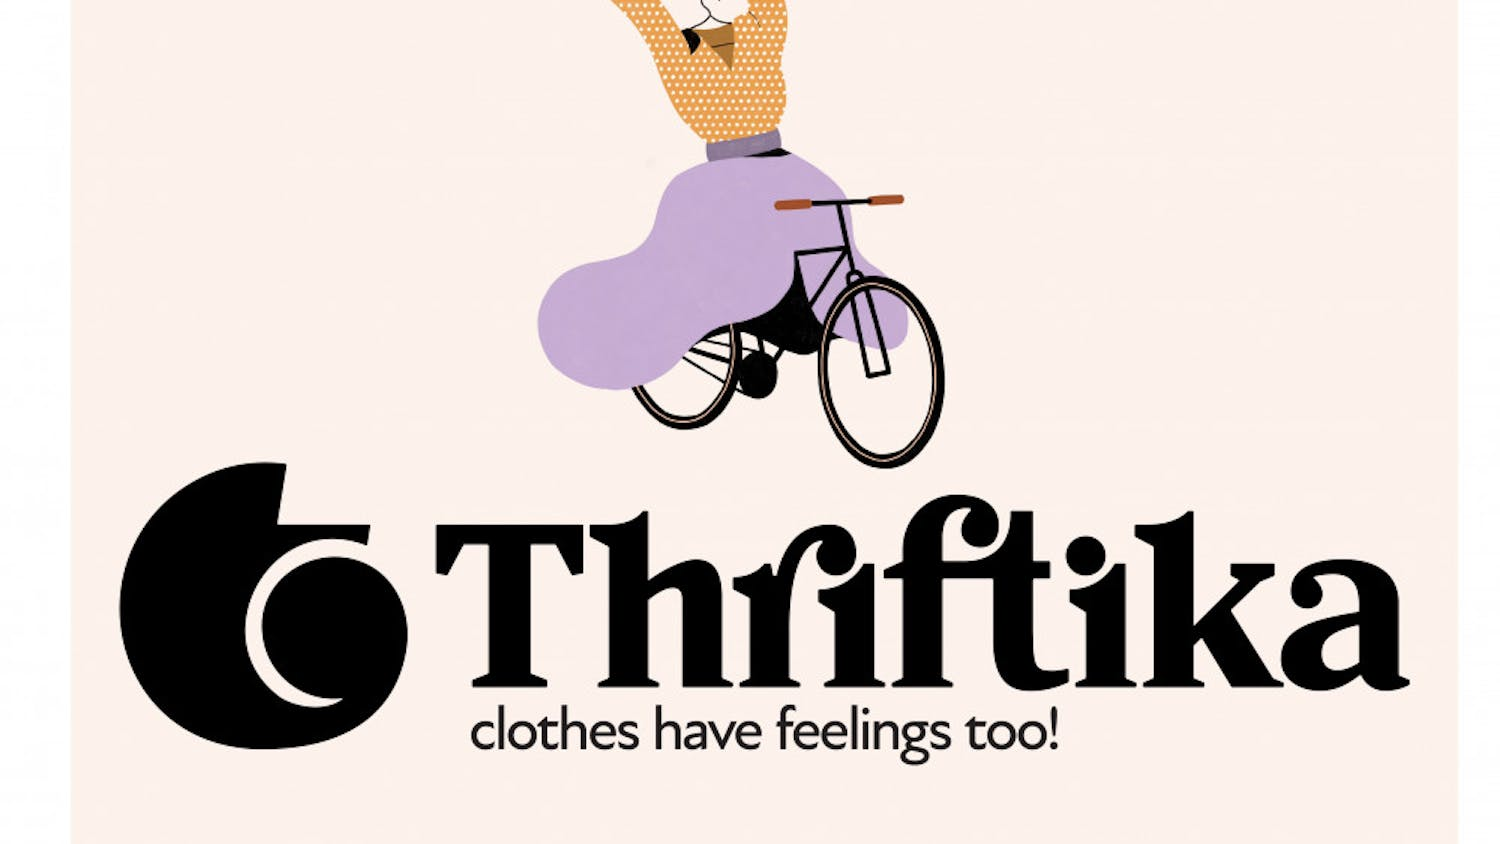 Maria Blokhina, a 25-year-old UF graphic design graduate student, created Thriftika to encourage fashion consumers to shop ethically through trade.